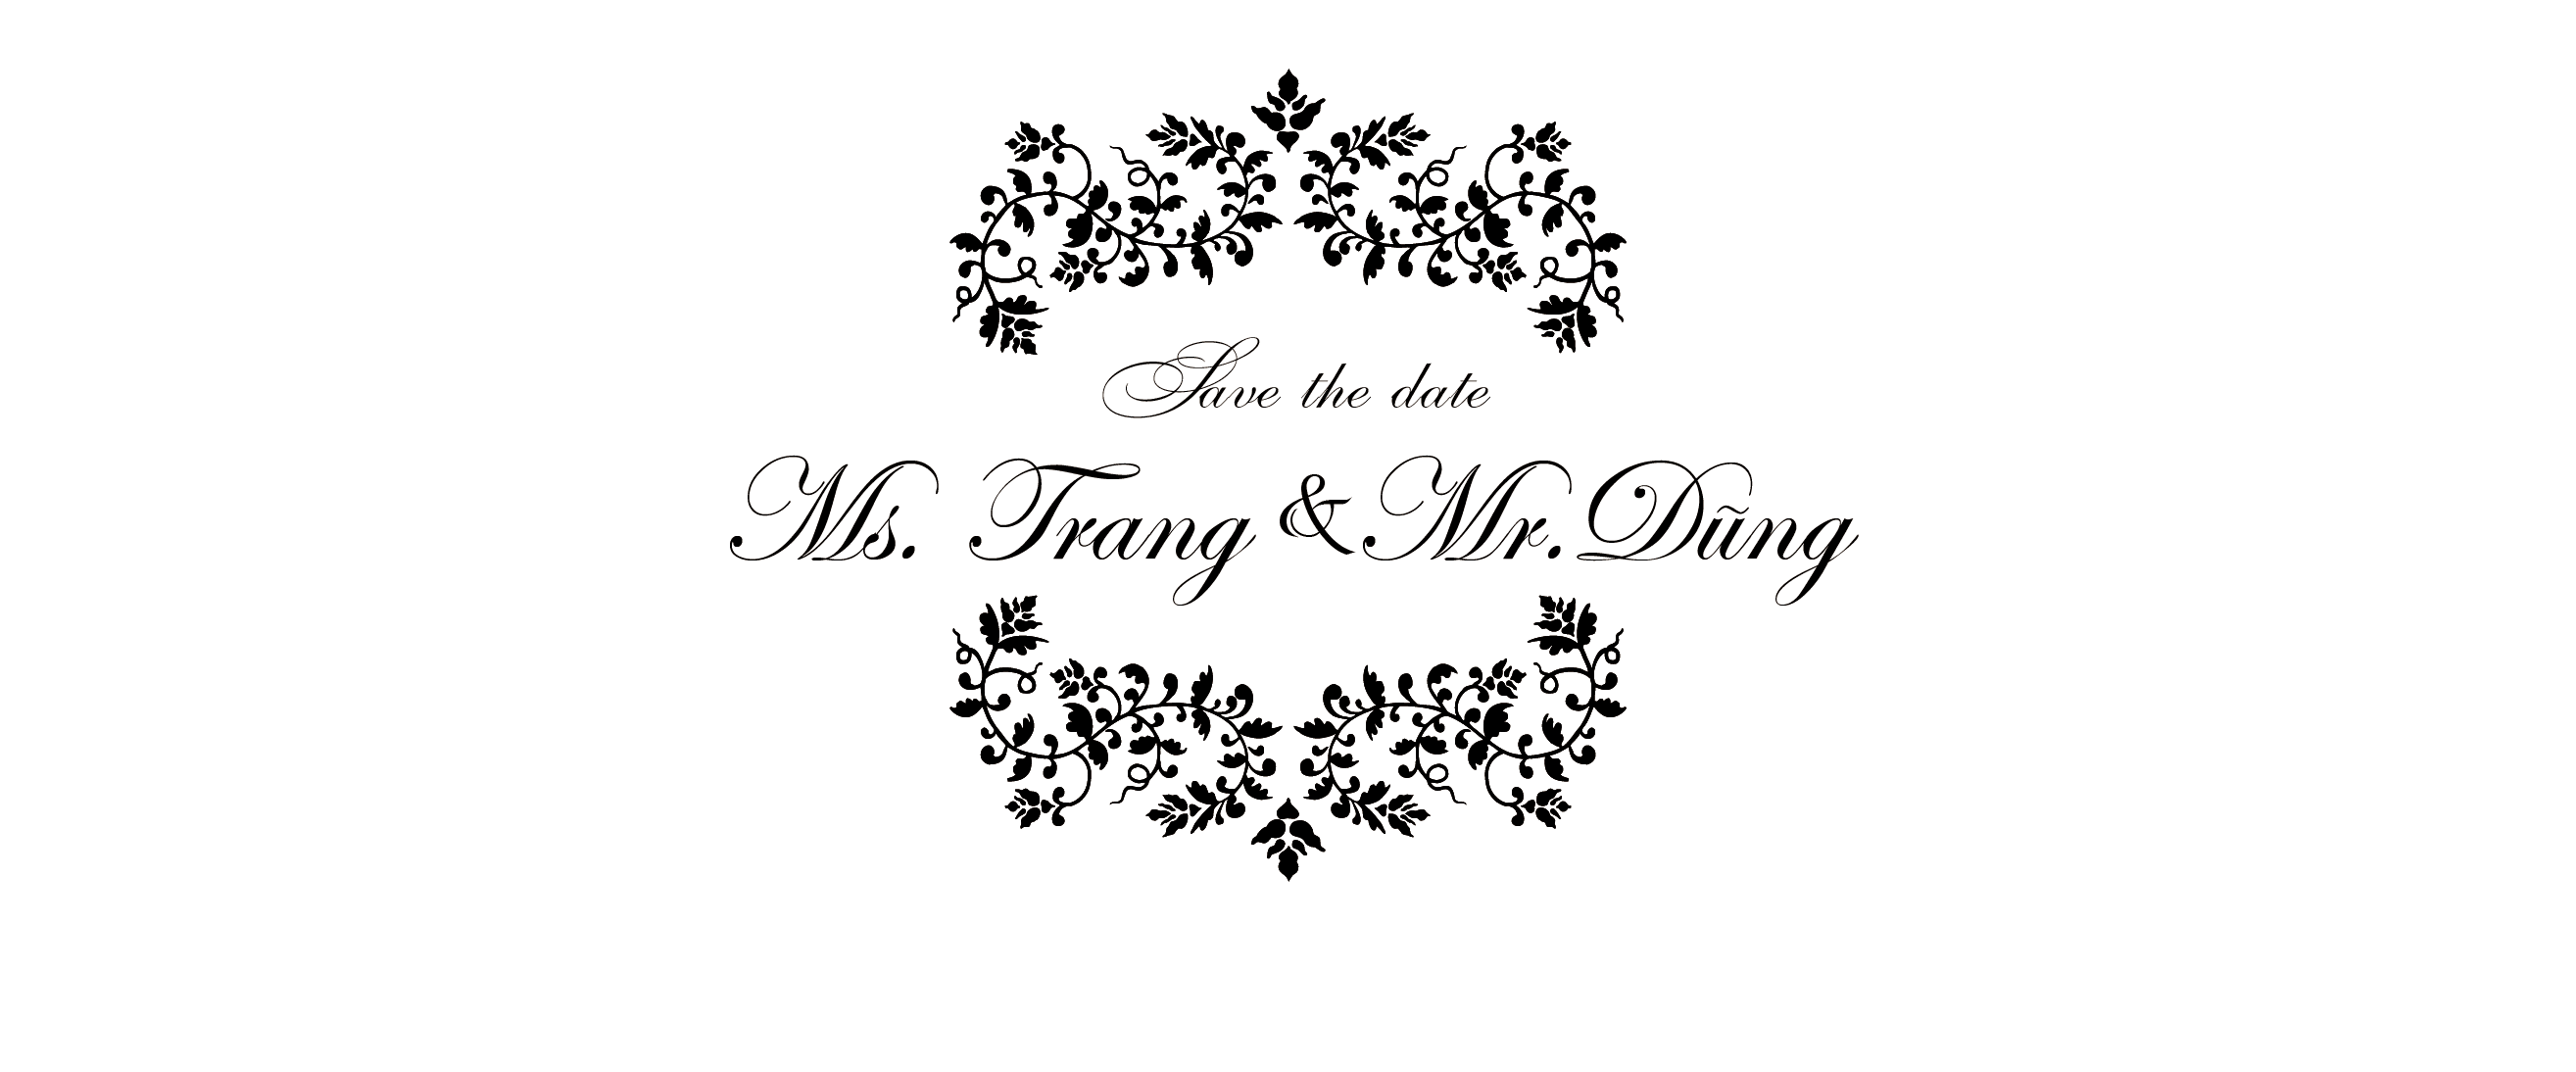 SAVE THE DATE Trang & Dũng